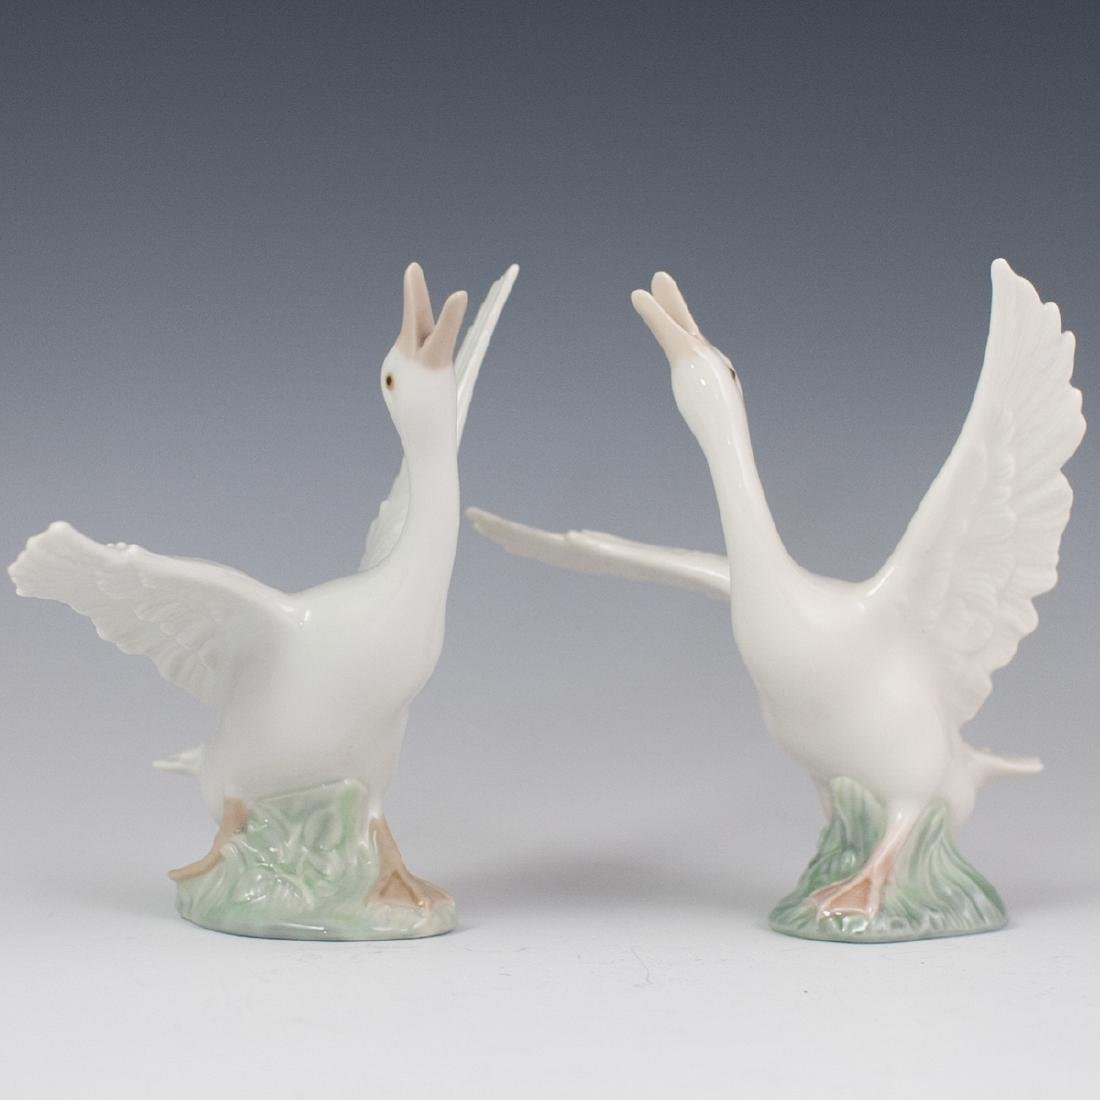 Lladro Porcelain Geese Figurines